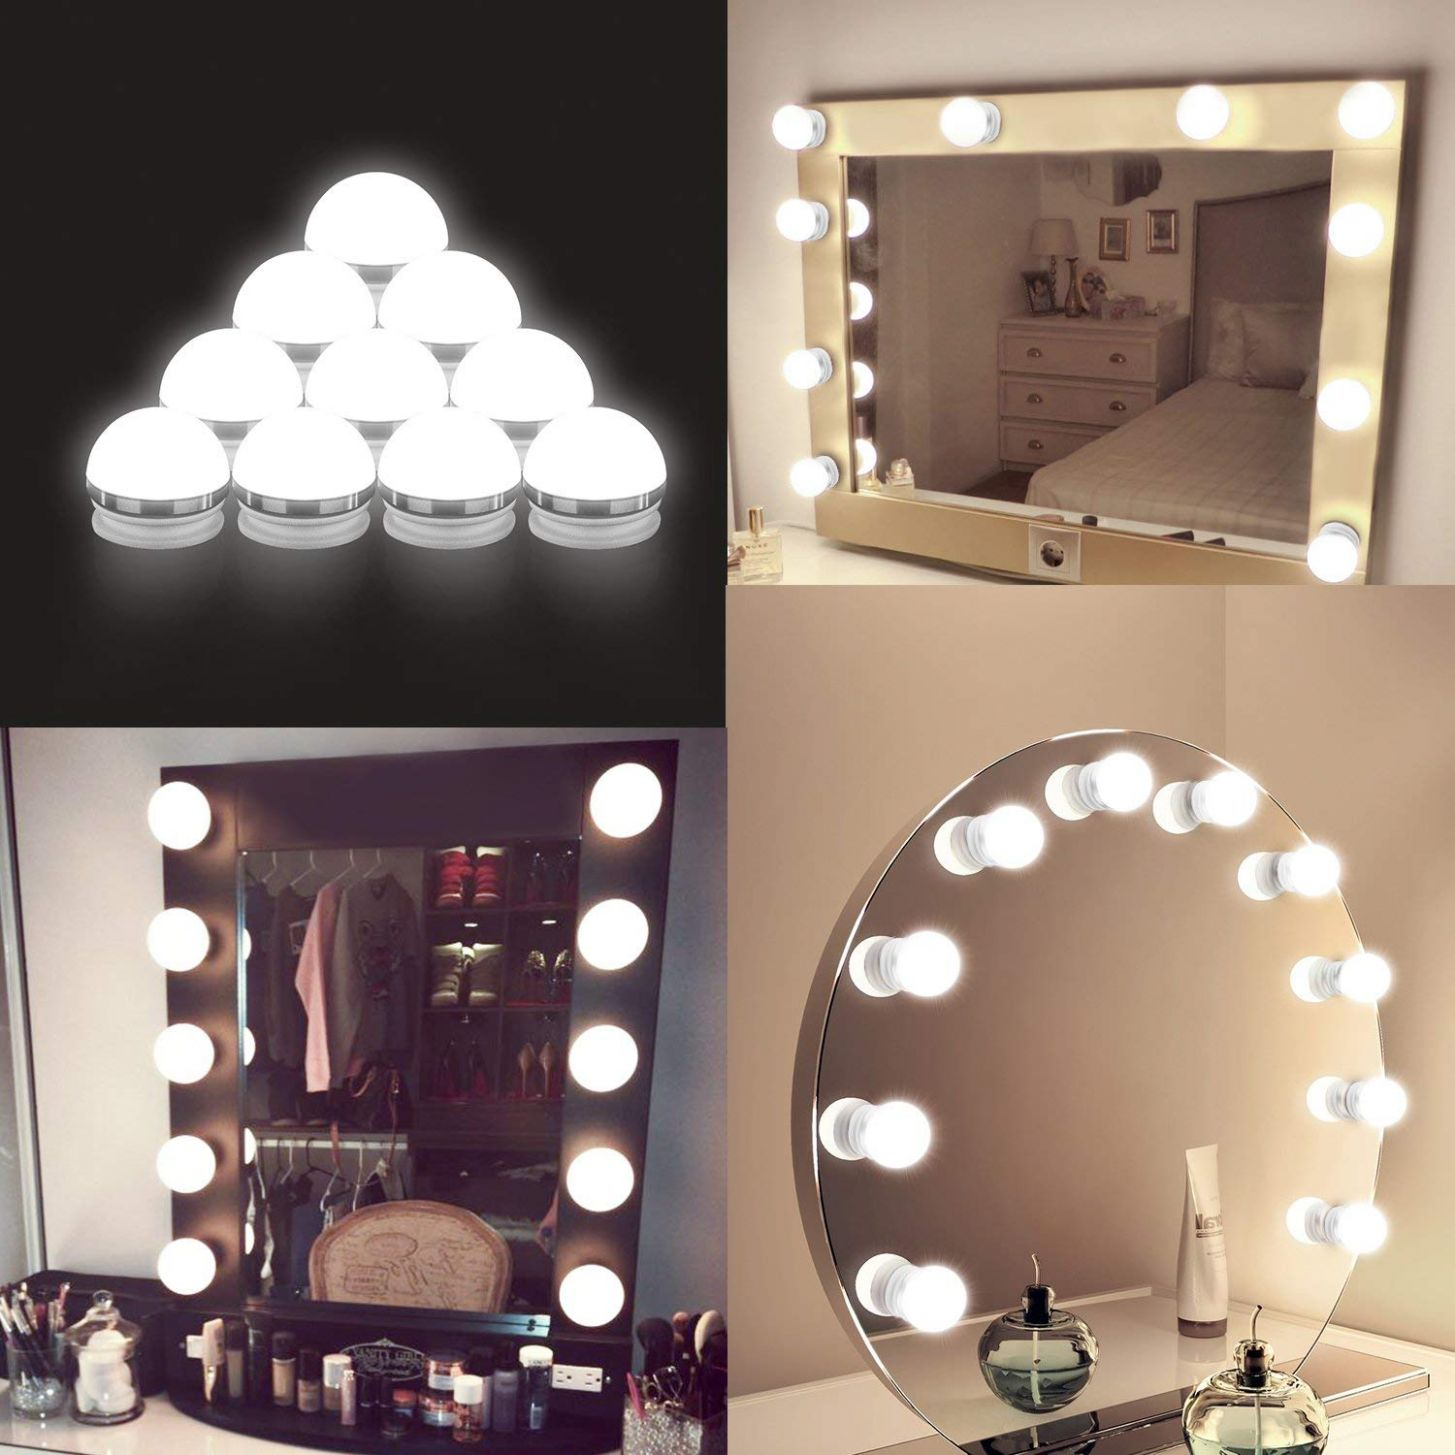 US $10.10 10% OFF|Hollywood Style USB LED Vanity Mirror Lights Kit Dimmable  Bulbs and Touch Dimmer for Makeup Vanity Table Set in Dressing Room|LED ..